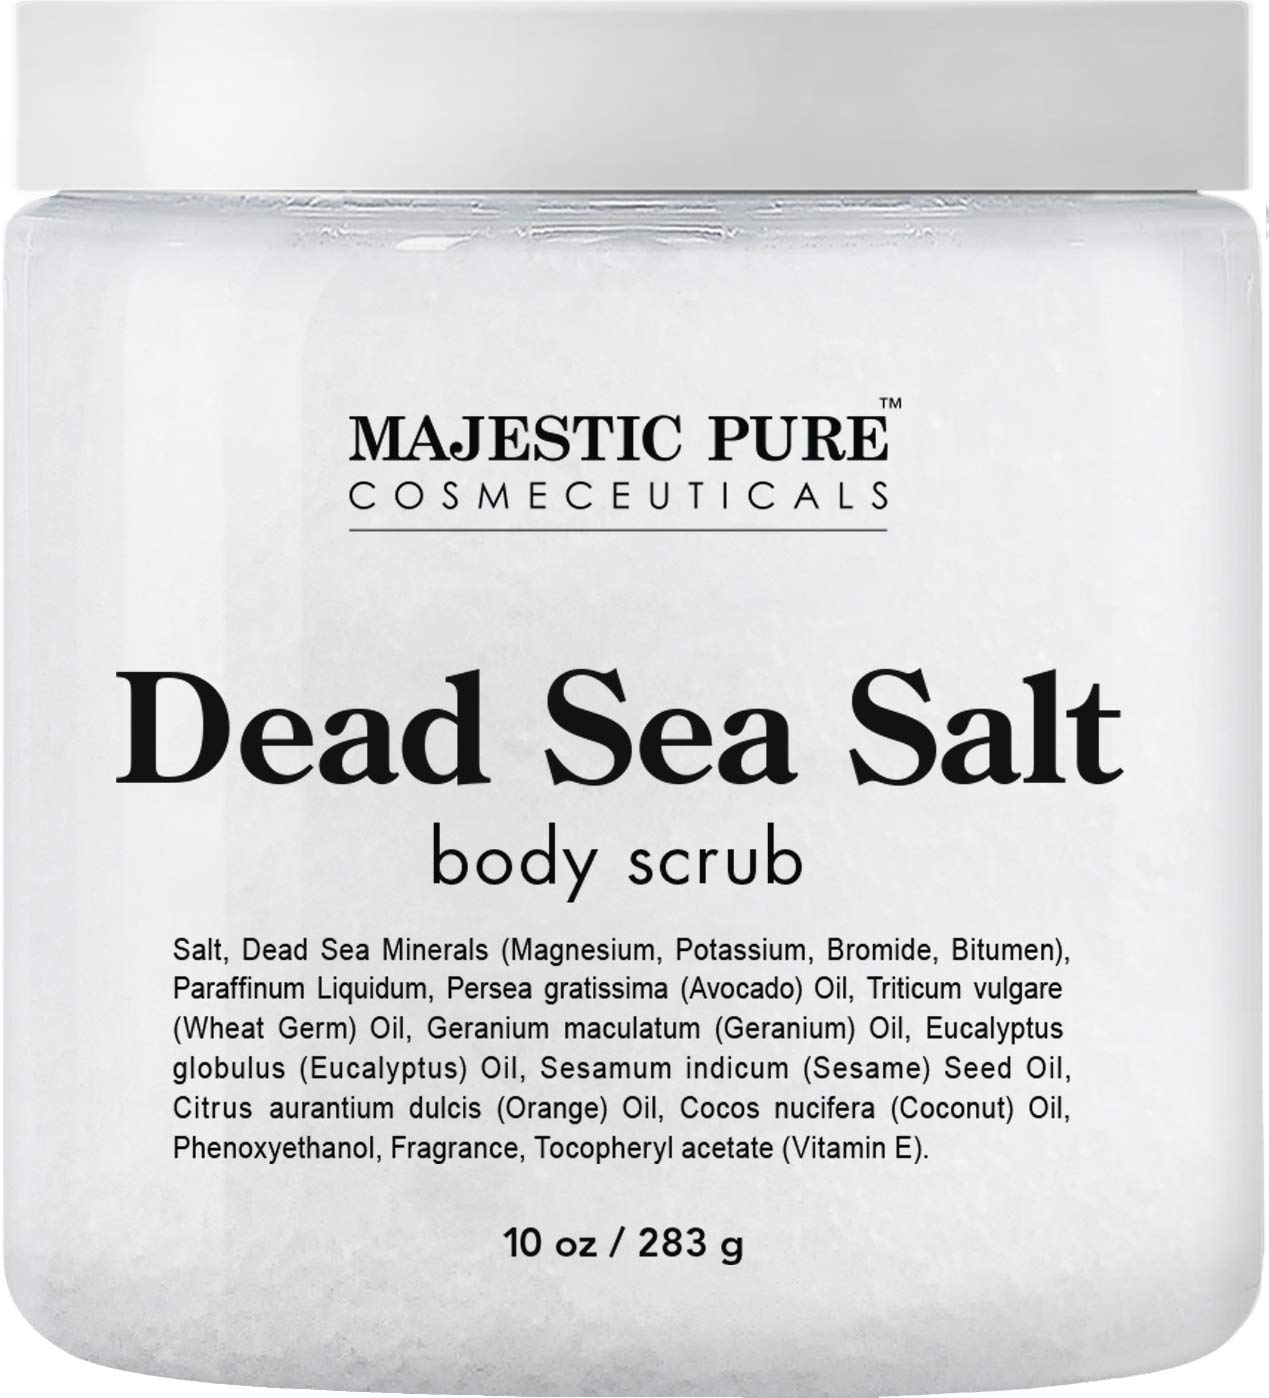 Dead Sea Salt Body Scrub by Majestic Pure - Infused with Aromatic Oils Exfoliates and Helps Conceal Stretch by Majestic Pure